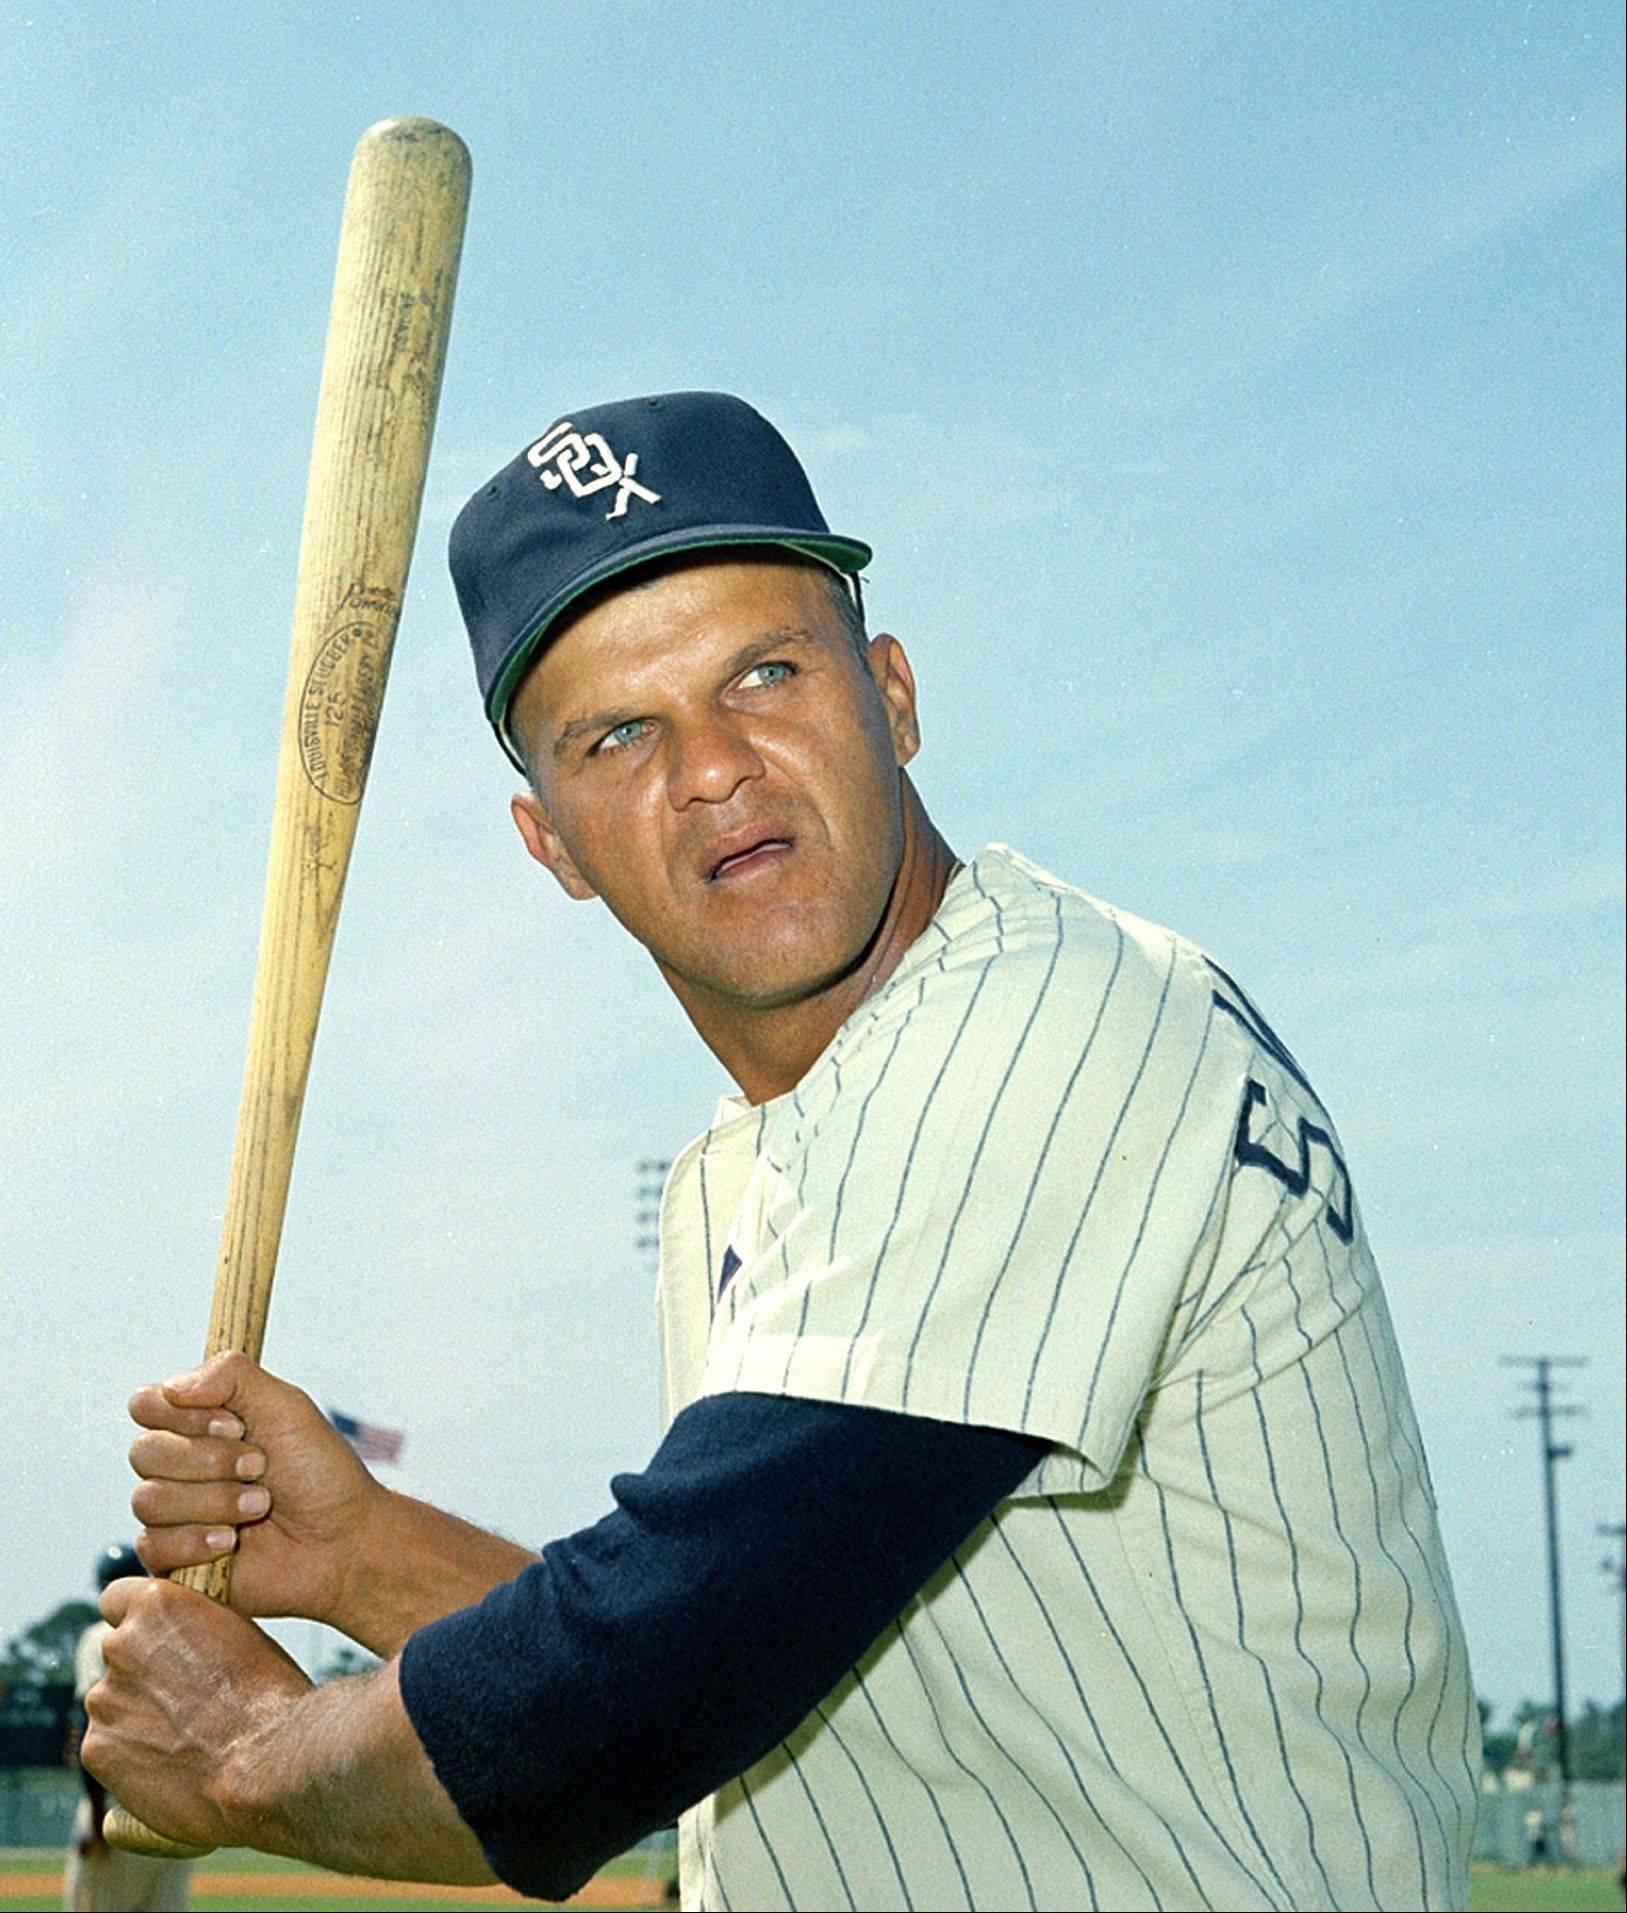 In this 1967, file photo, Bill Skowron of the Chicago White Sox baseball club is shown in action pose. Skowron, a four-time All-Star first baseman who helped the New Yankees win four World Series titles in the 1950s and 1960s, died Friday, April 27, 2012, at Northwest Community Hospital in Arlington Heights, Ill. He was 81. He also played for the Los Angeles Dodgers, the Washington Senators, the White Sox and the California Angels.